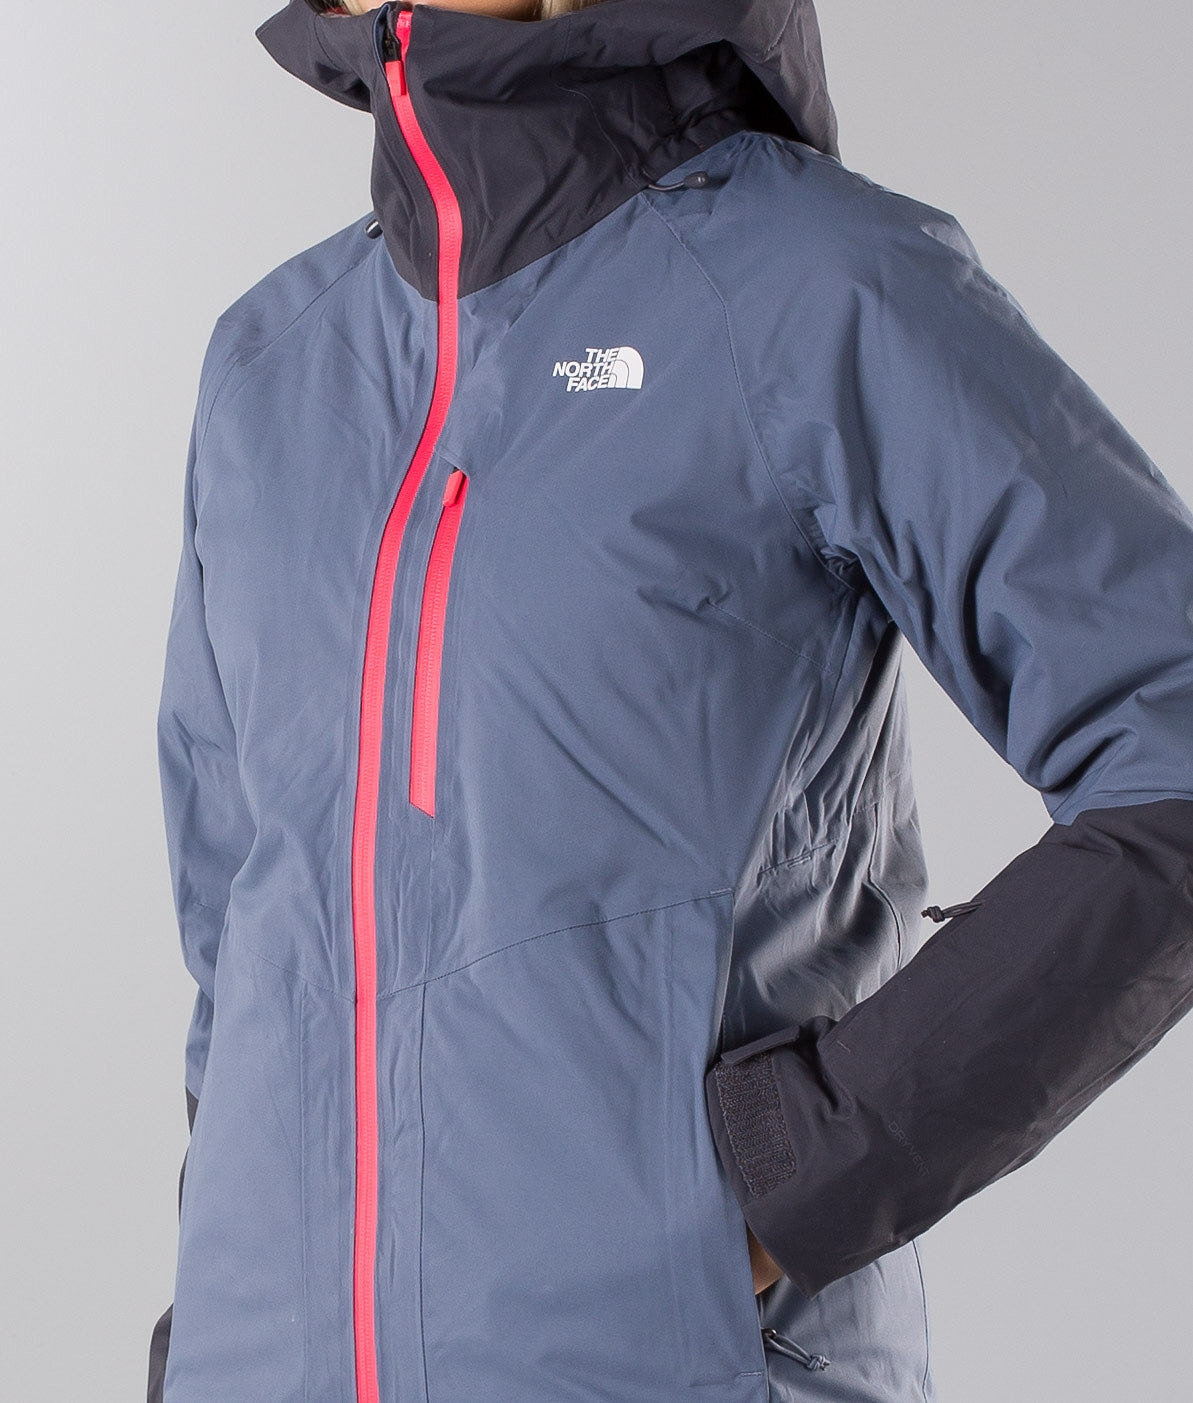 Buy Sickline Ski Jacket from The North Face at Ridestore.com - Always free shipping, free returns and 30 days money back guarantee